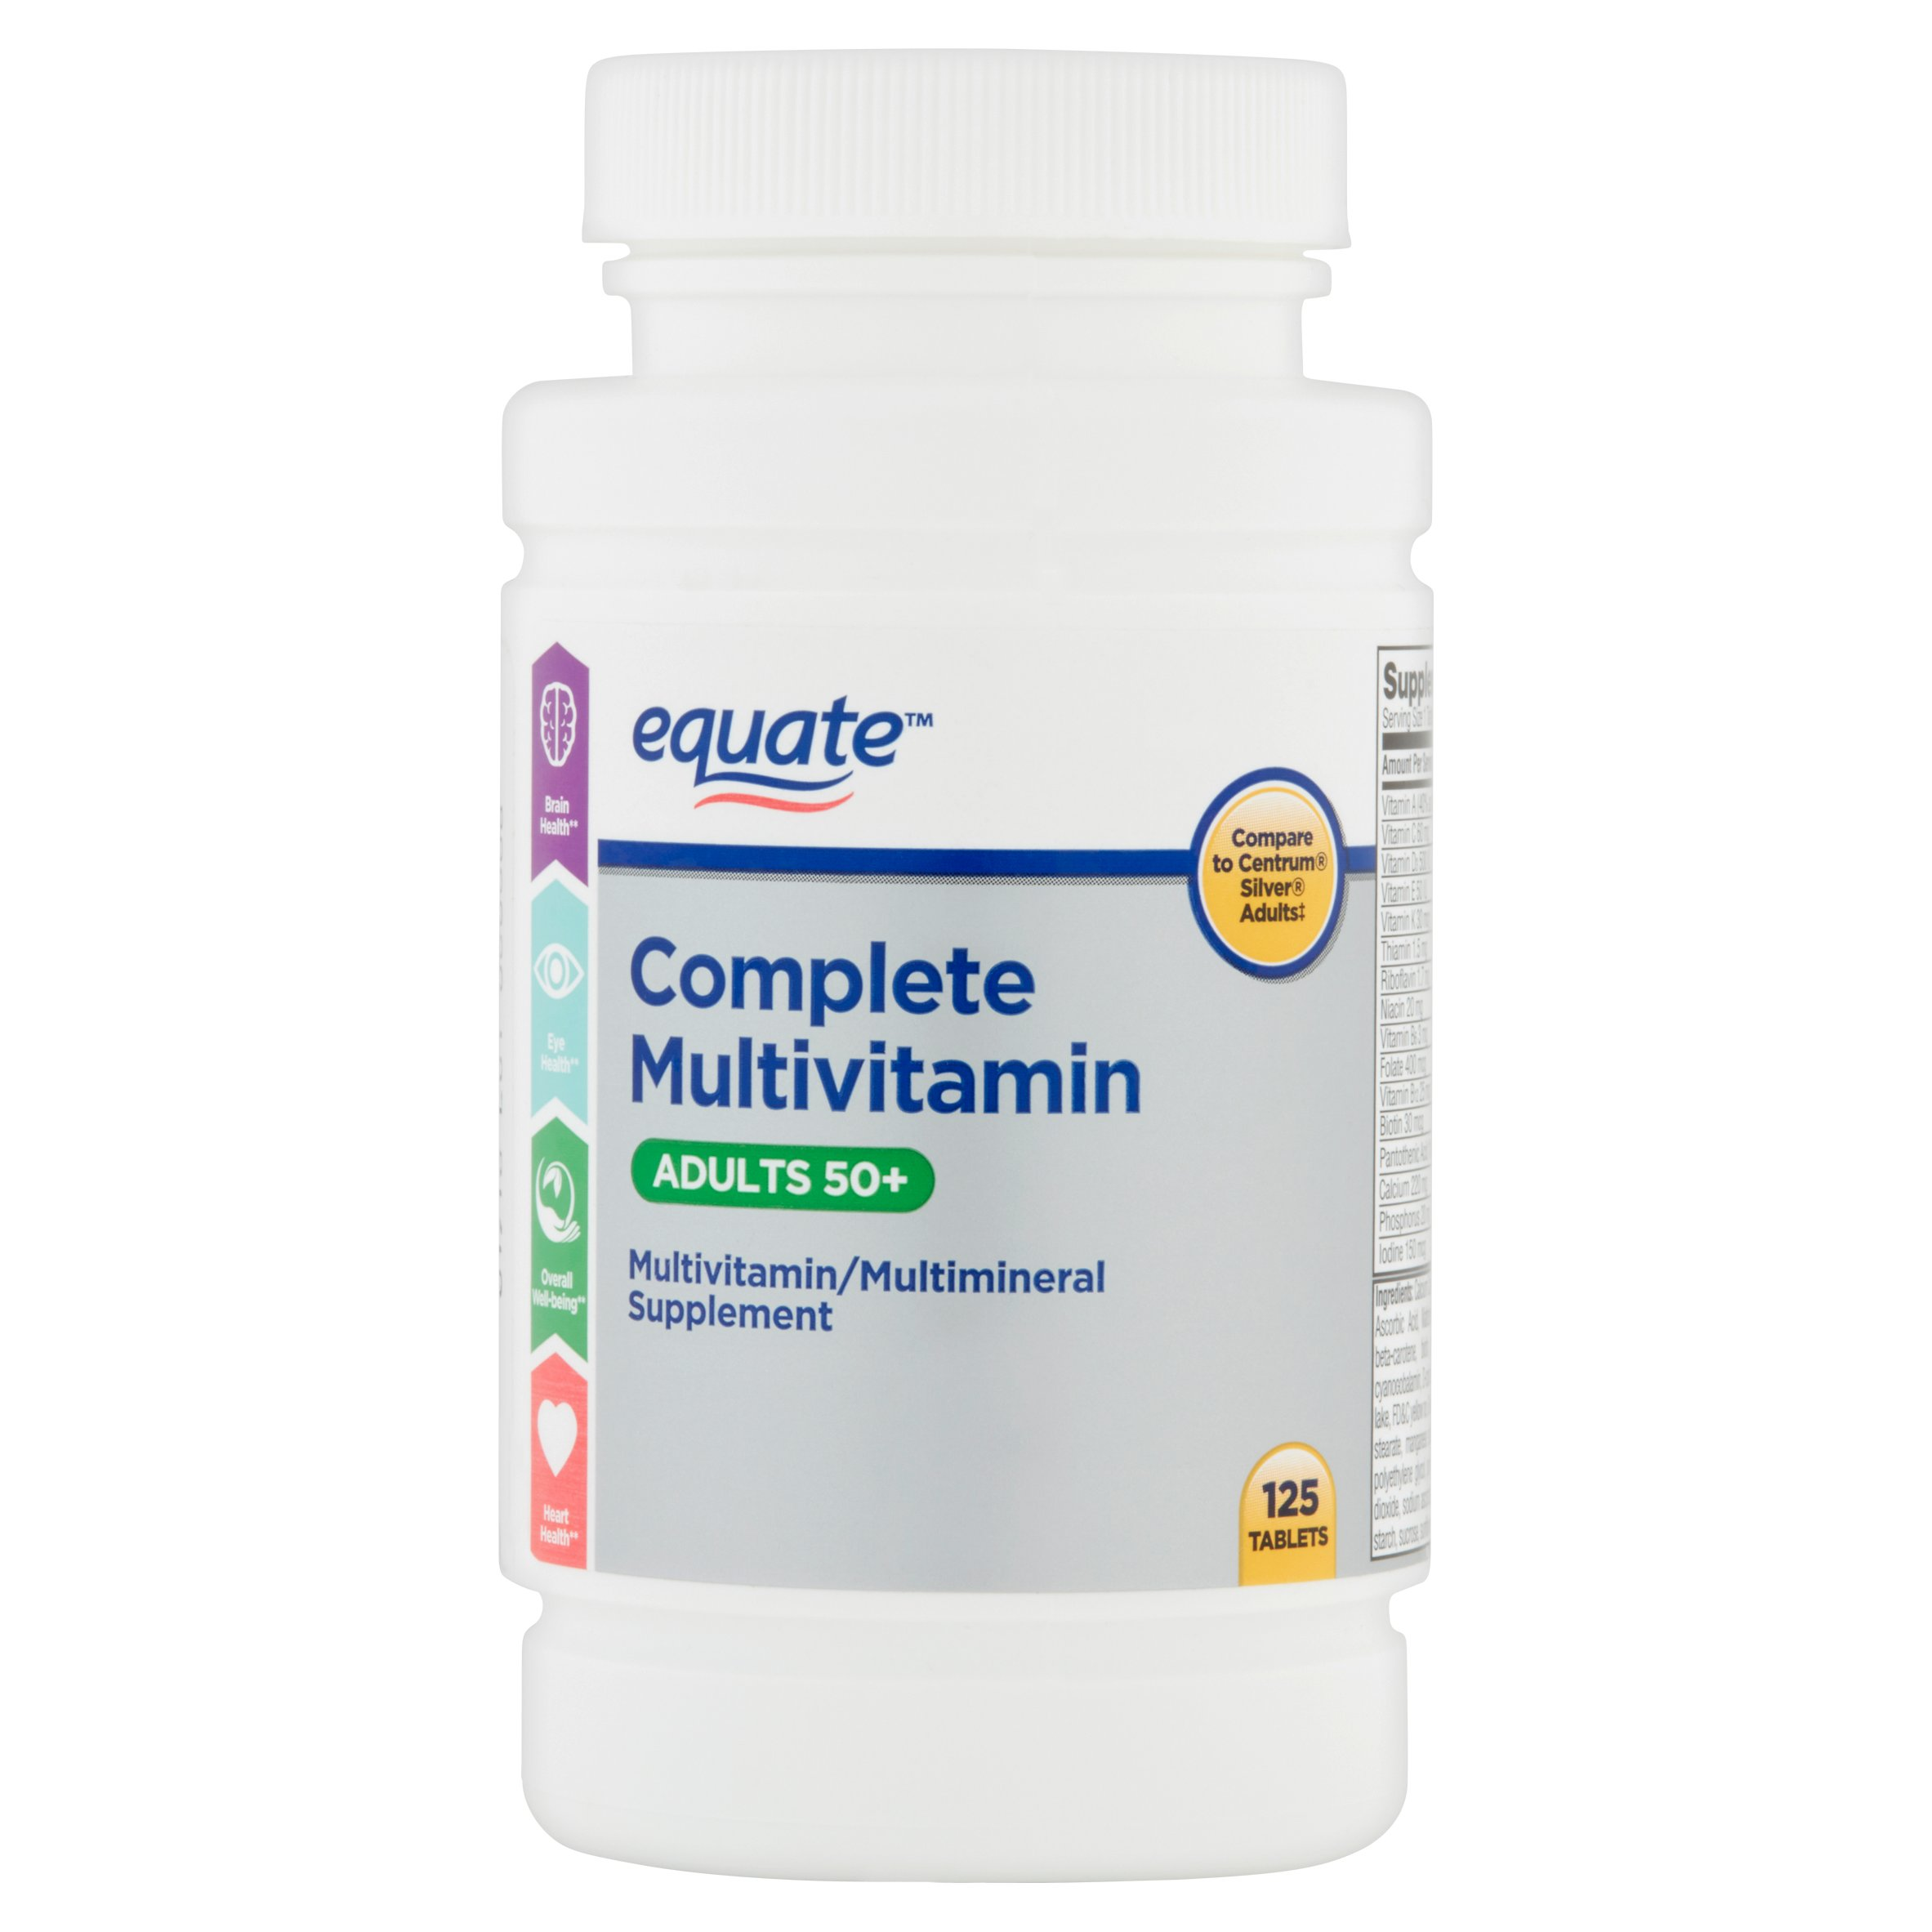 Equate Adults 50+ Complete Multivitamin Tablets, 125 Ct